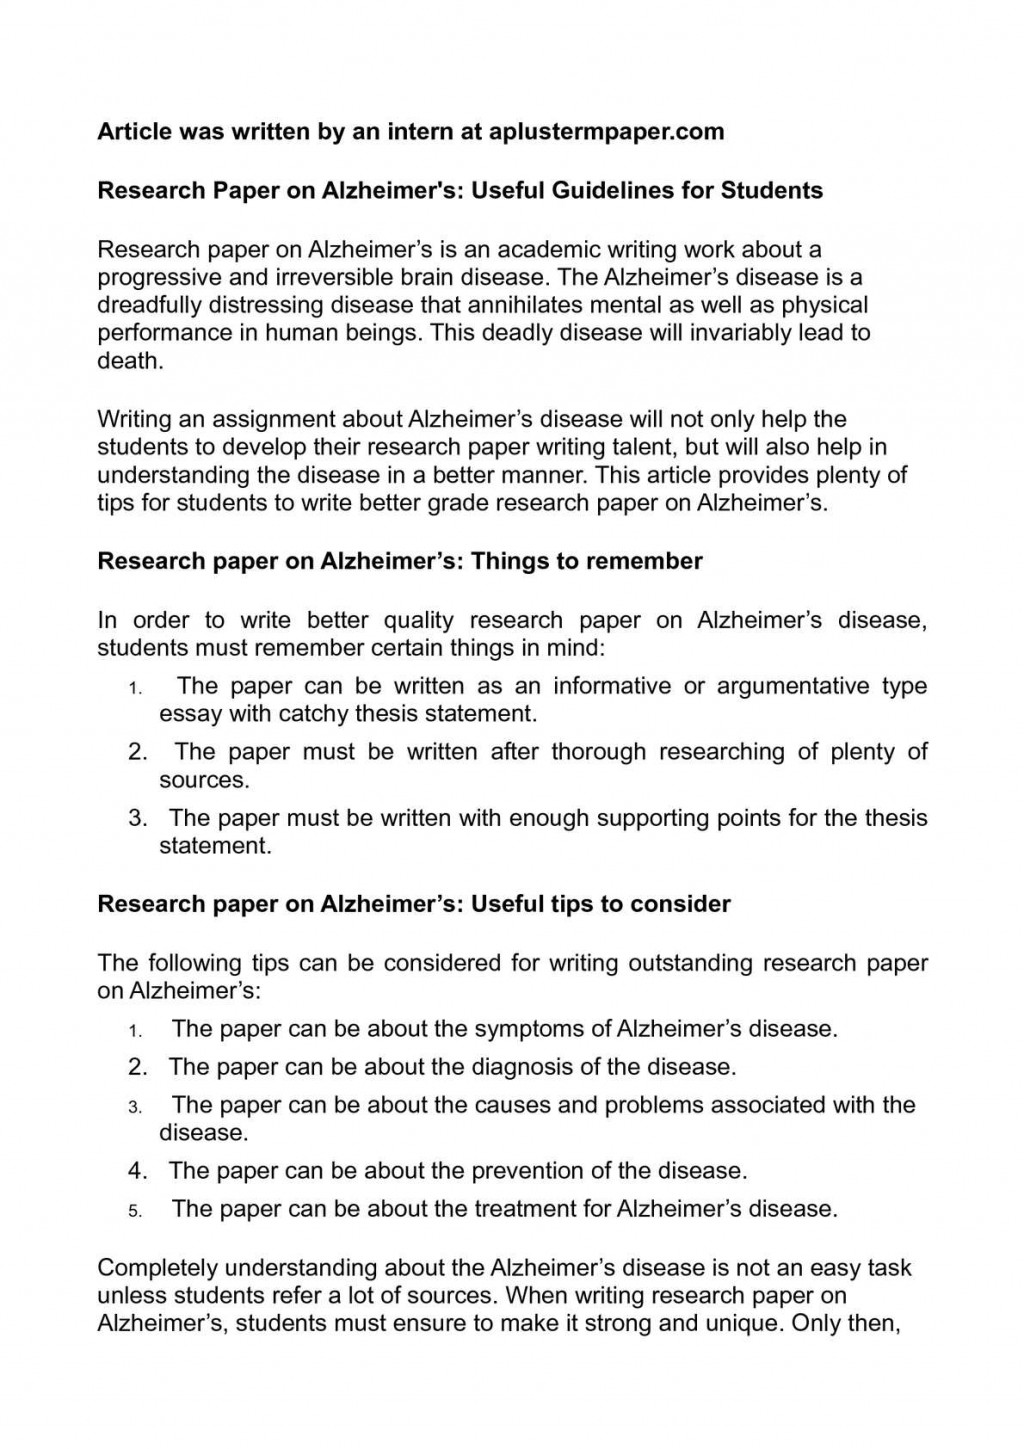 002 Research Paper Alzheimers Disease Introduction Fantastic Alzheimer's Large